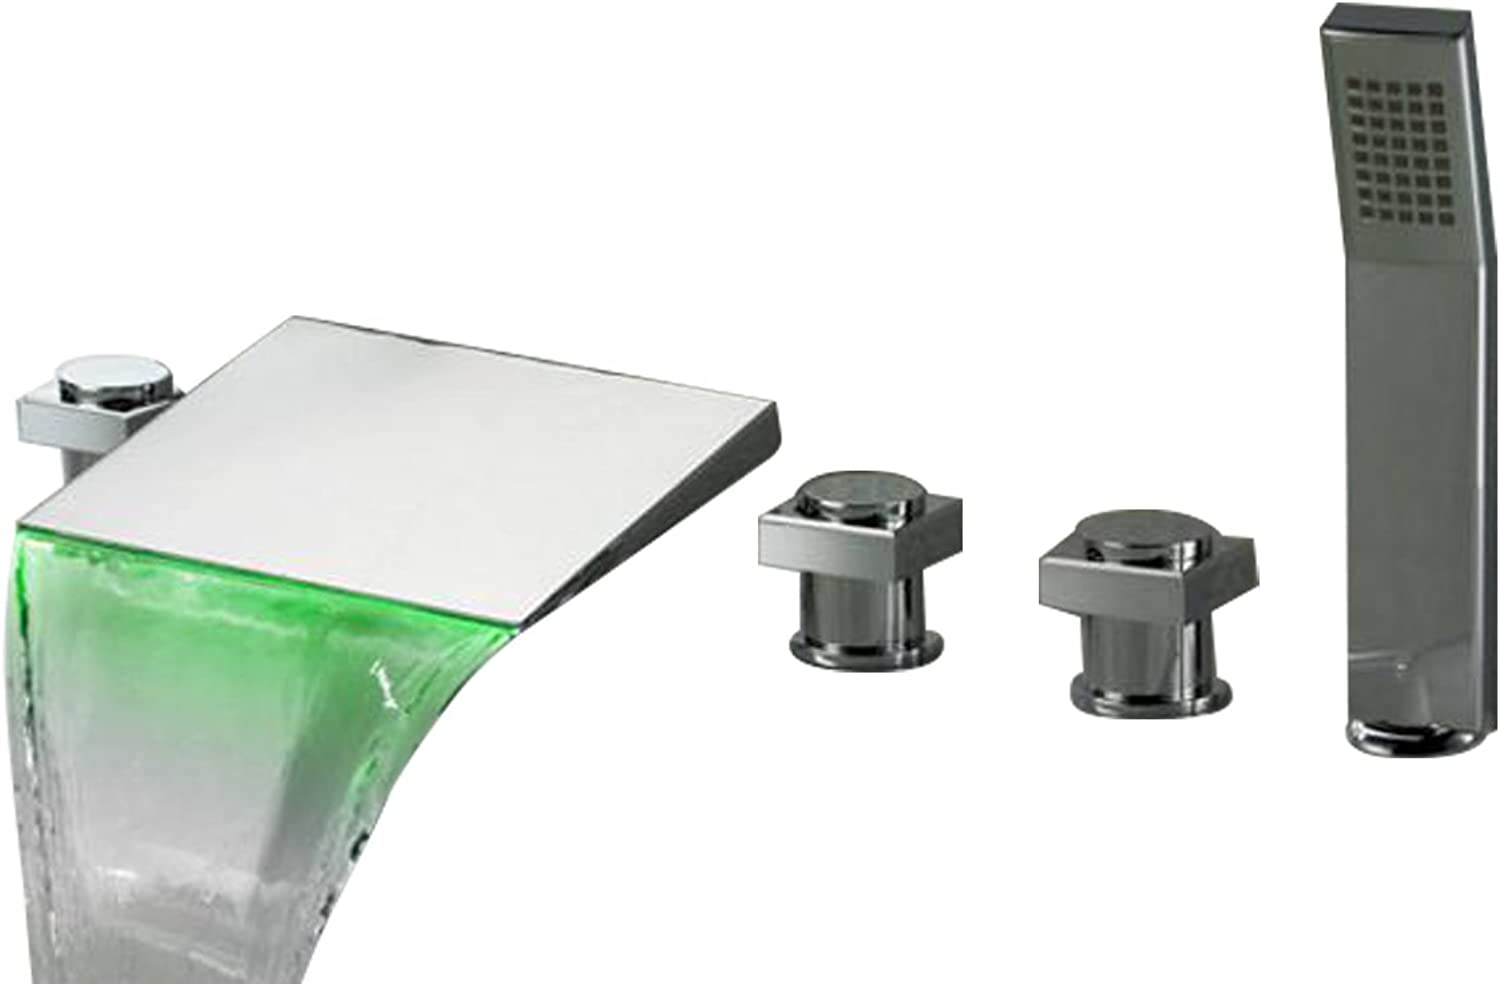 Bath Tap Contemporary Waterfall Bath Mixer Tap with Hand Shower LED color Change 5 Holes Chrome M5103CL